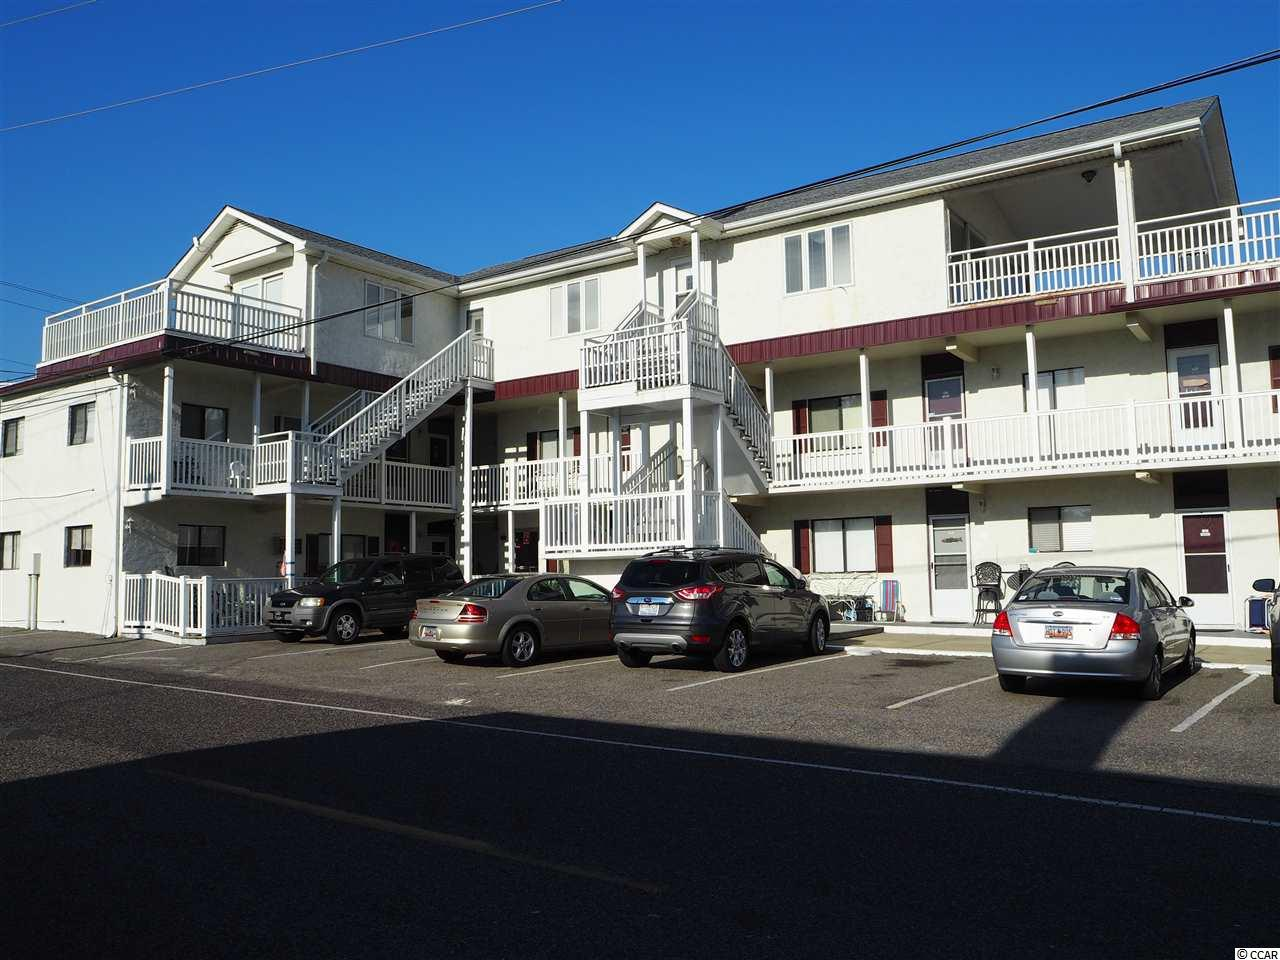 Condo Sold At Grand Strand Resort Iii In North Myrtle Beach South Carolina Unit Listing Mls